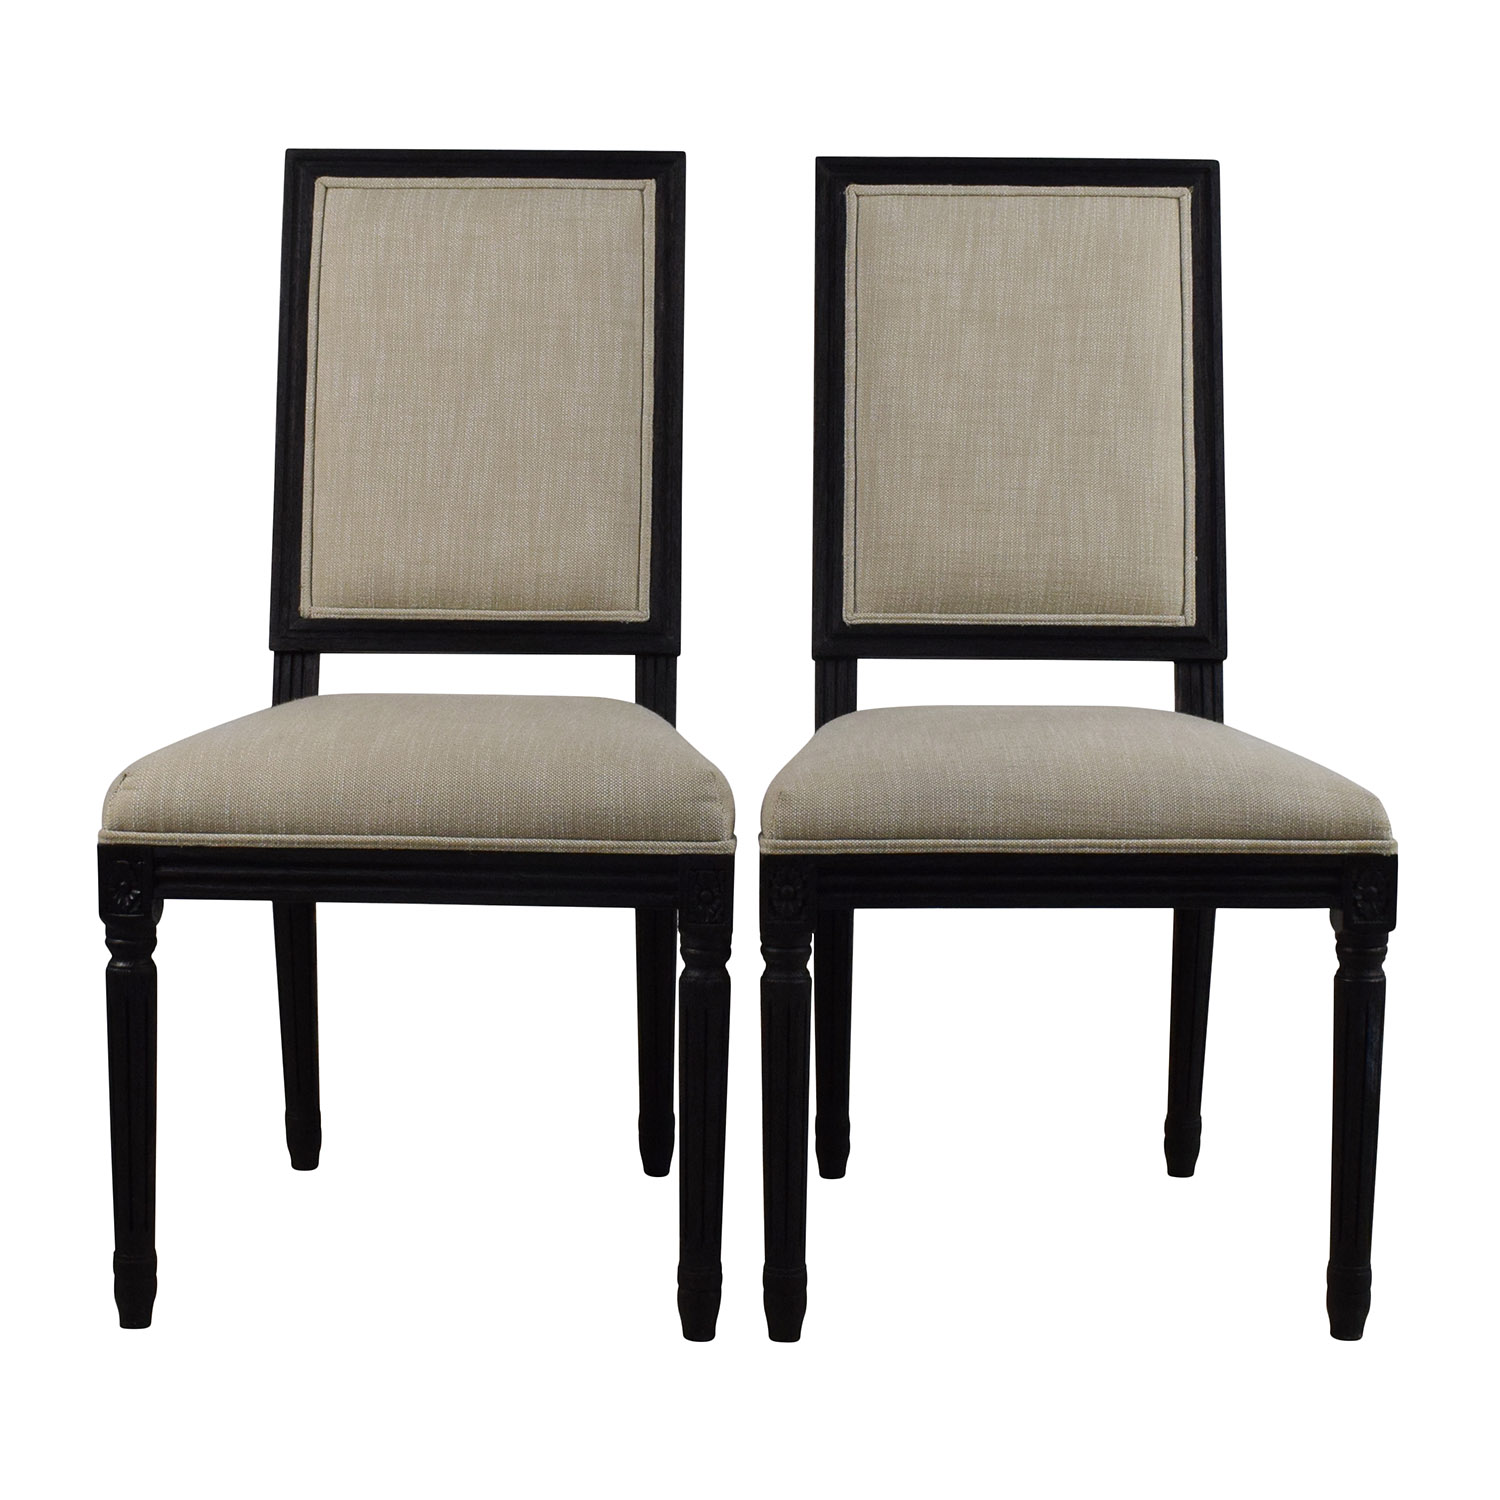 Restoration Hardware Dining Chairs 68 Off Restoration Hardware Restoration Hardware Pair Of Vintage French Square Fabric Chairs Chairs